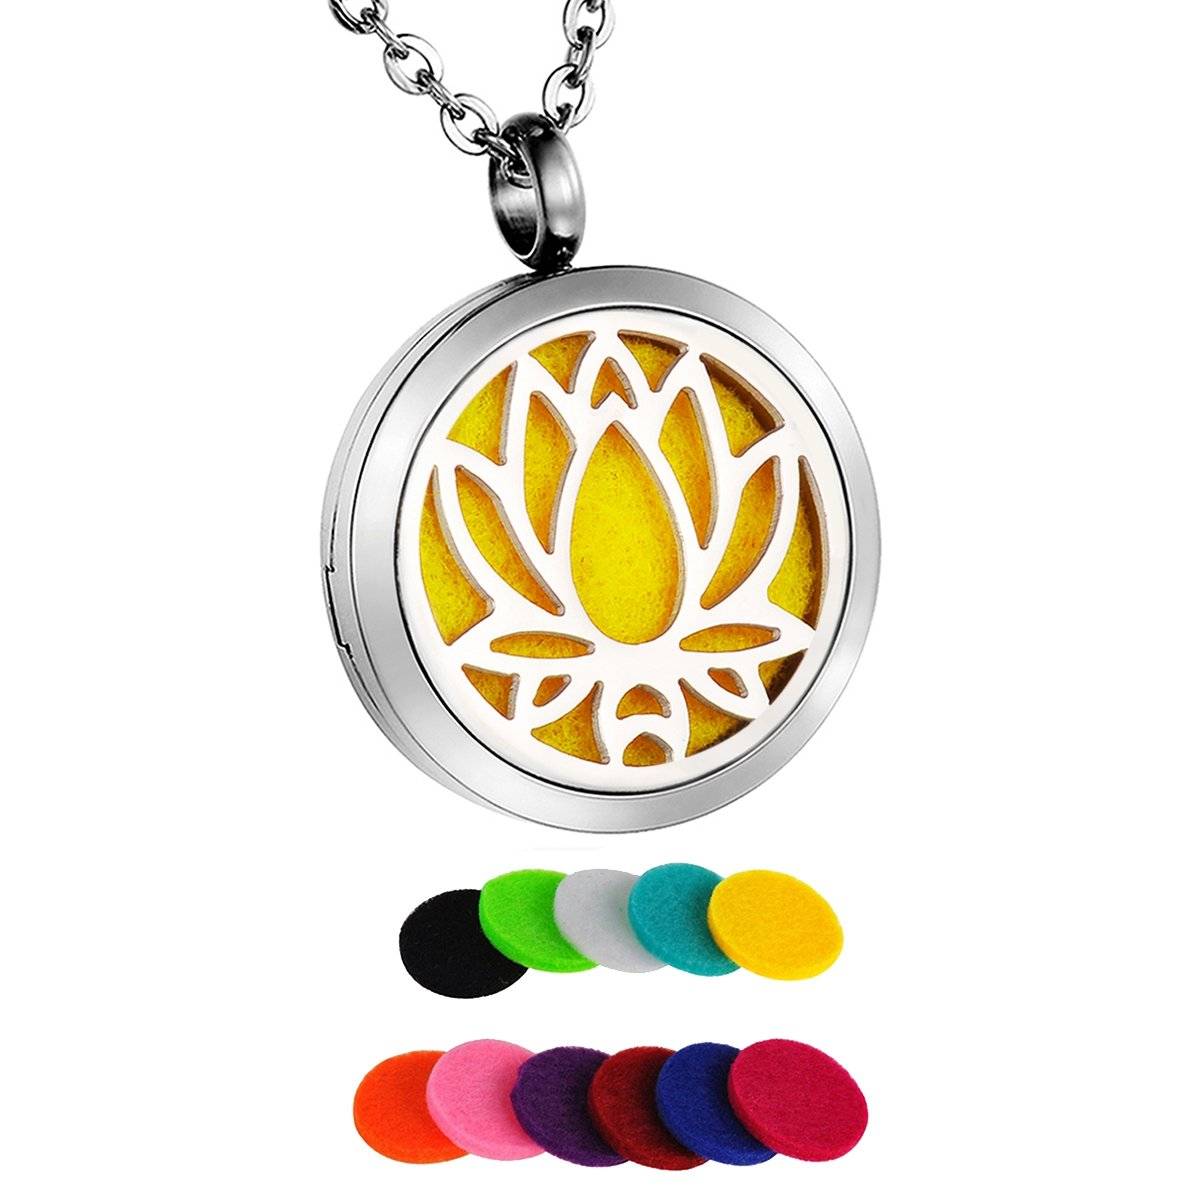 HooAMI Lotus Flower Aromatherapy Essential Oil Diffuser Necklace Pendant Locket Jewelry Gift Set TY BETY104855